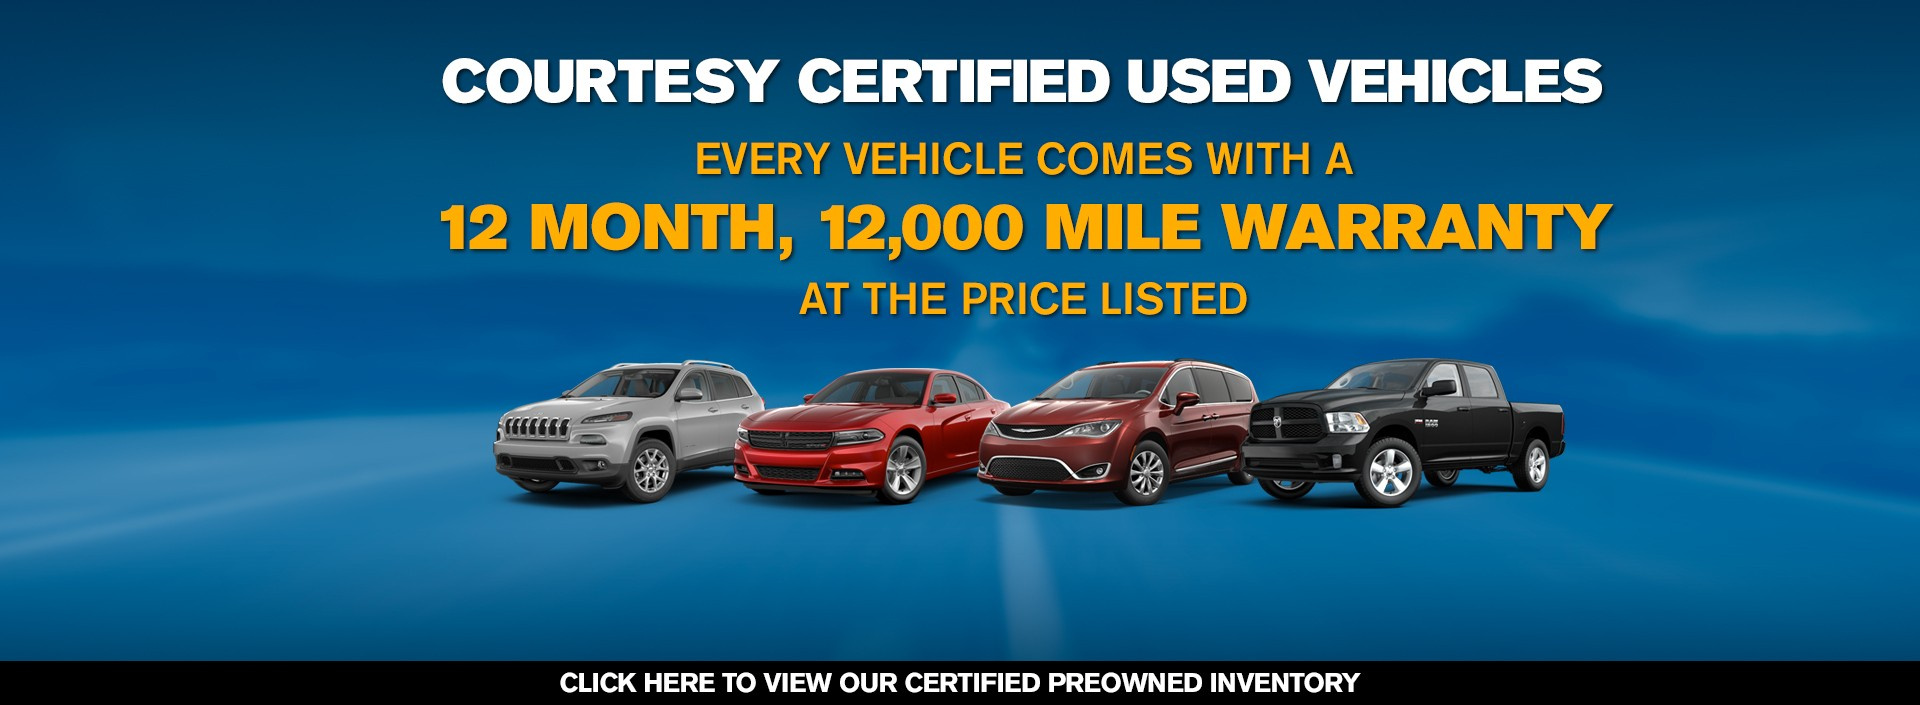 Courtesy Certified Used Vehicles